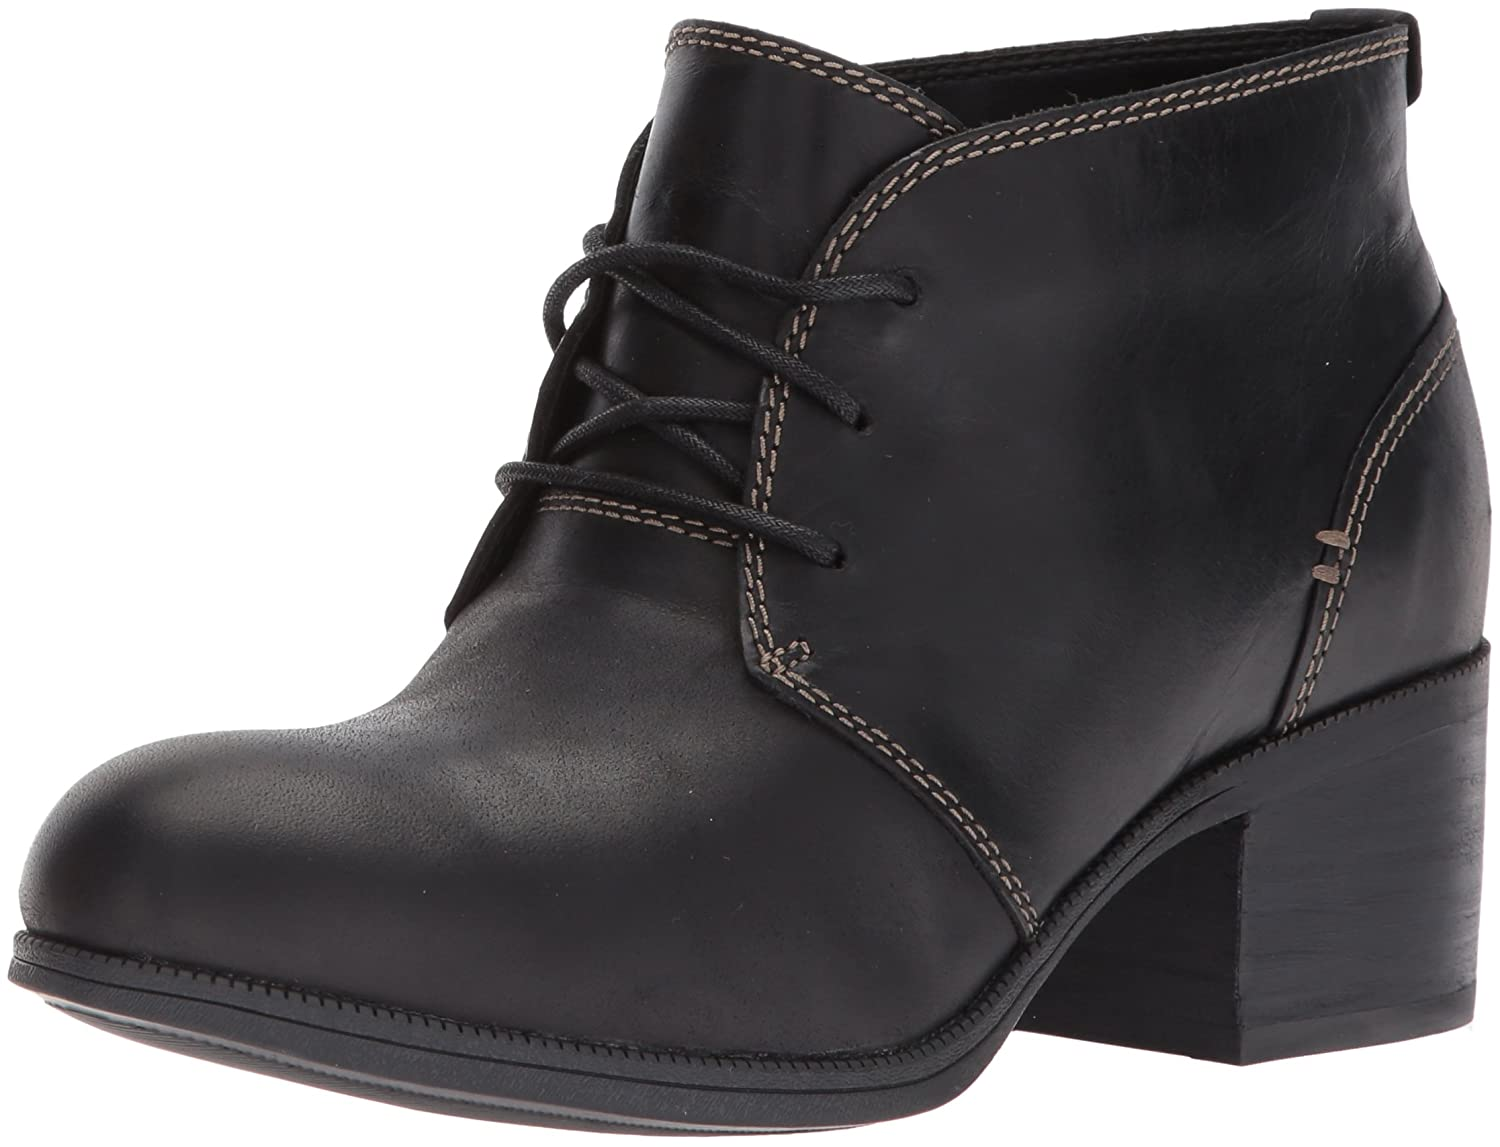 CLARKS Women's Maypearl Flora Ankle Bootie B01NALIMGV 9 B(M) US|Black